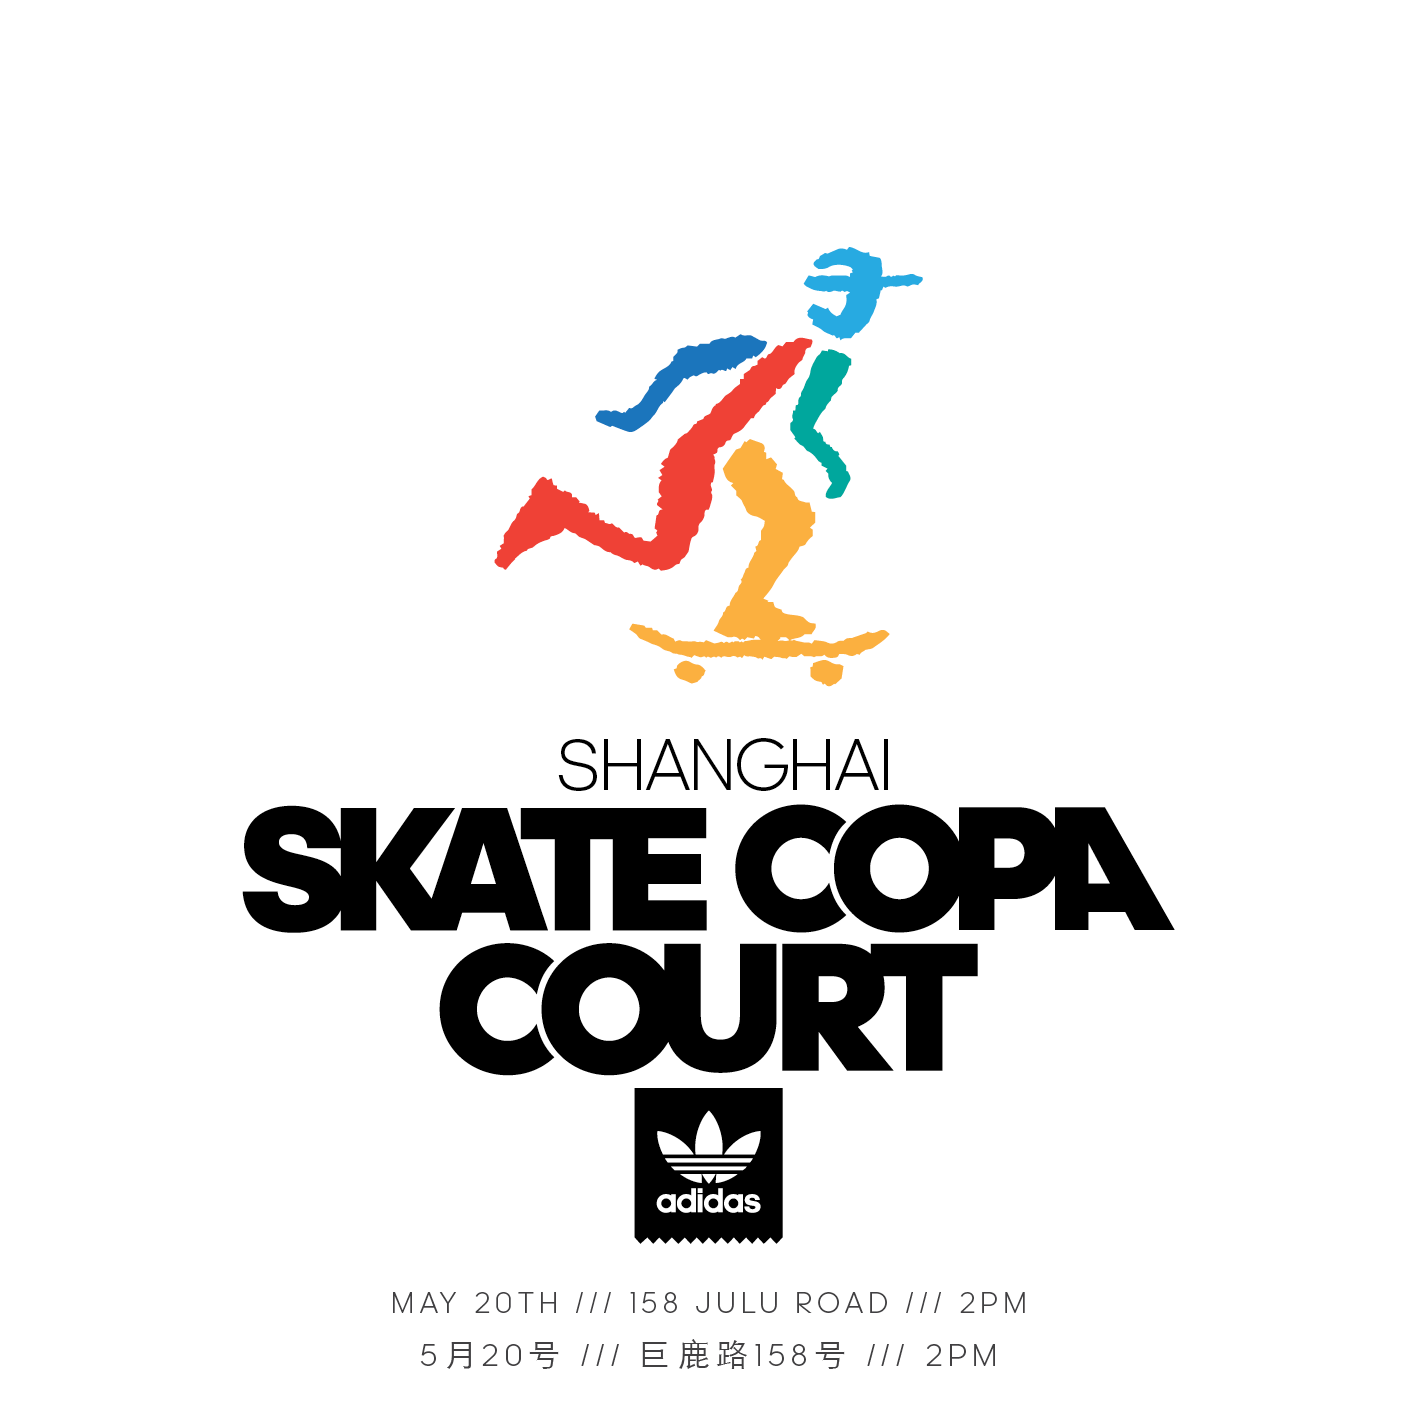 SKATECOPA_COURT_ADIDAS_FLYER_SOCIAL POST_1